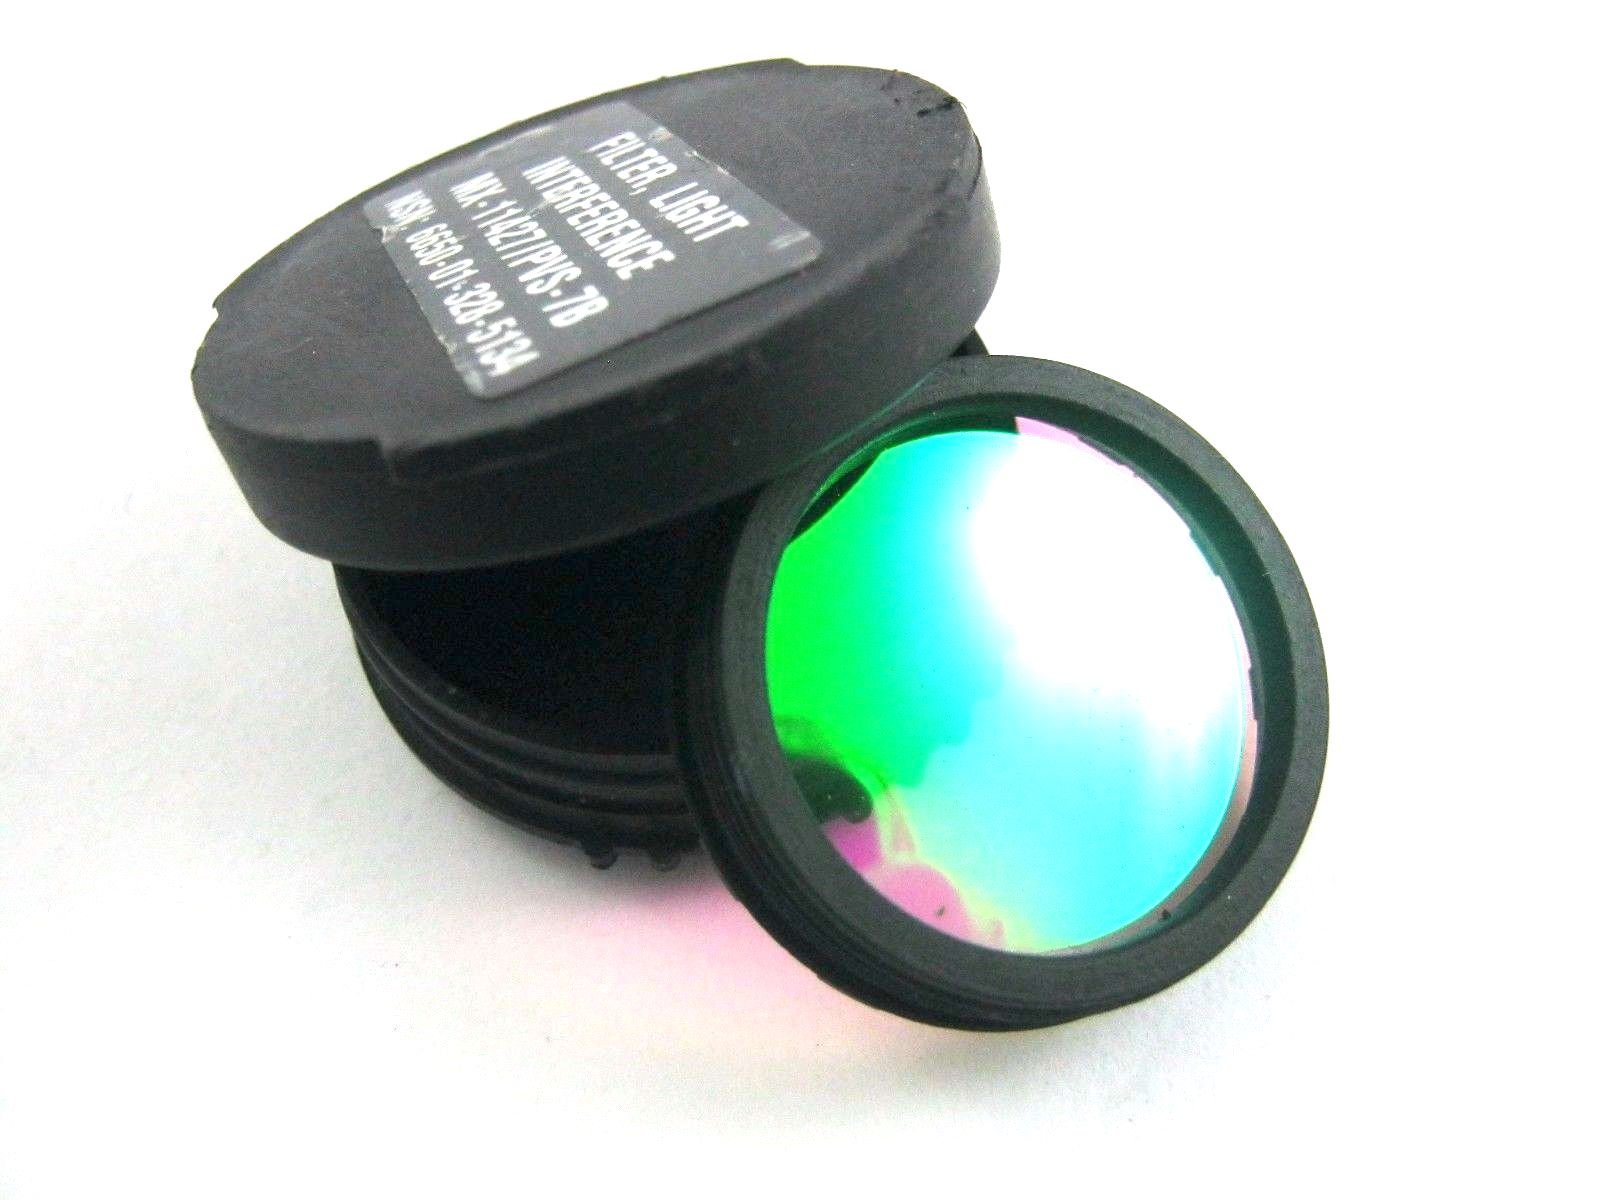 Night Vision Goggle Light Interference Filter (LIF), Night Vision Lens for PVS 14 & 7 by Anvis